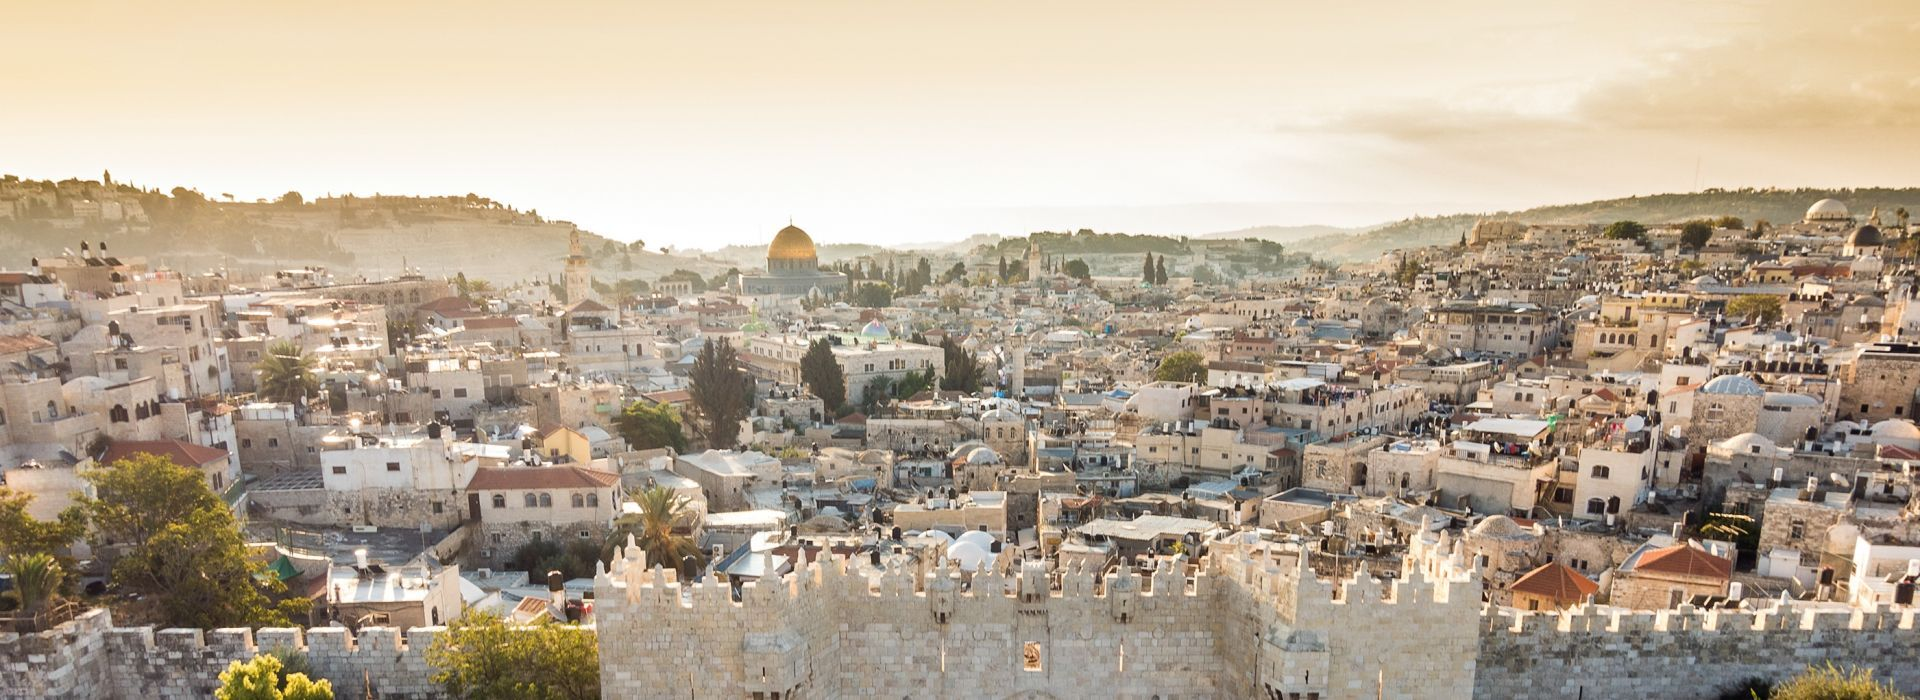 Sightseeing, attractions, culture and history Tours in Israel